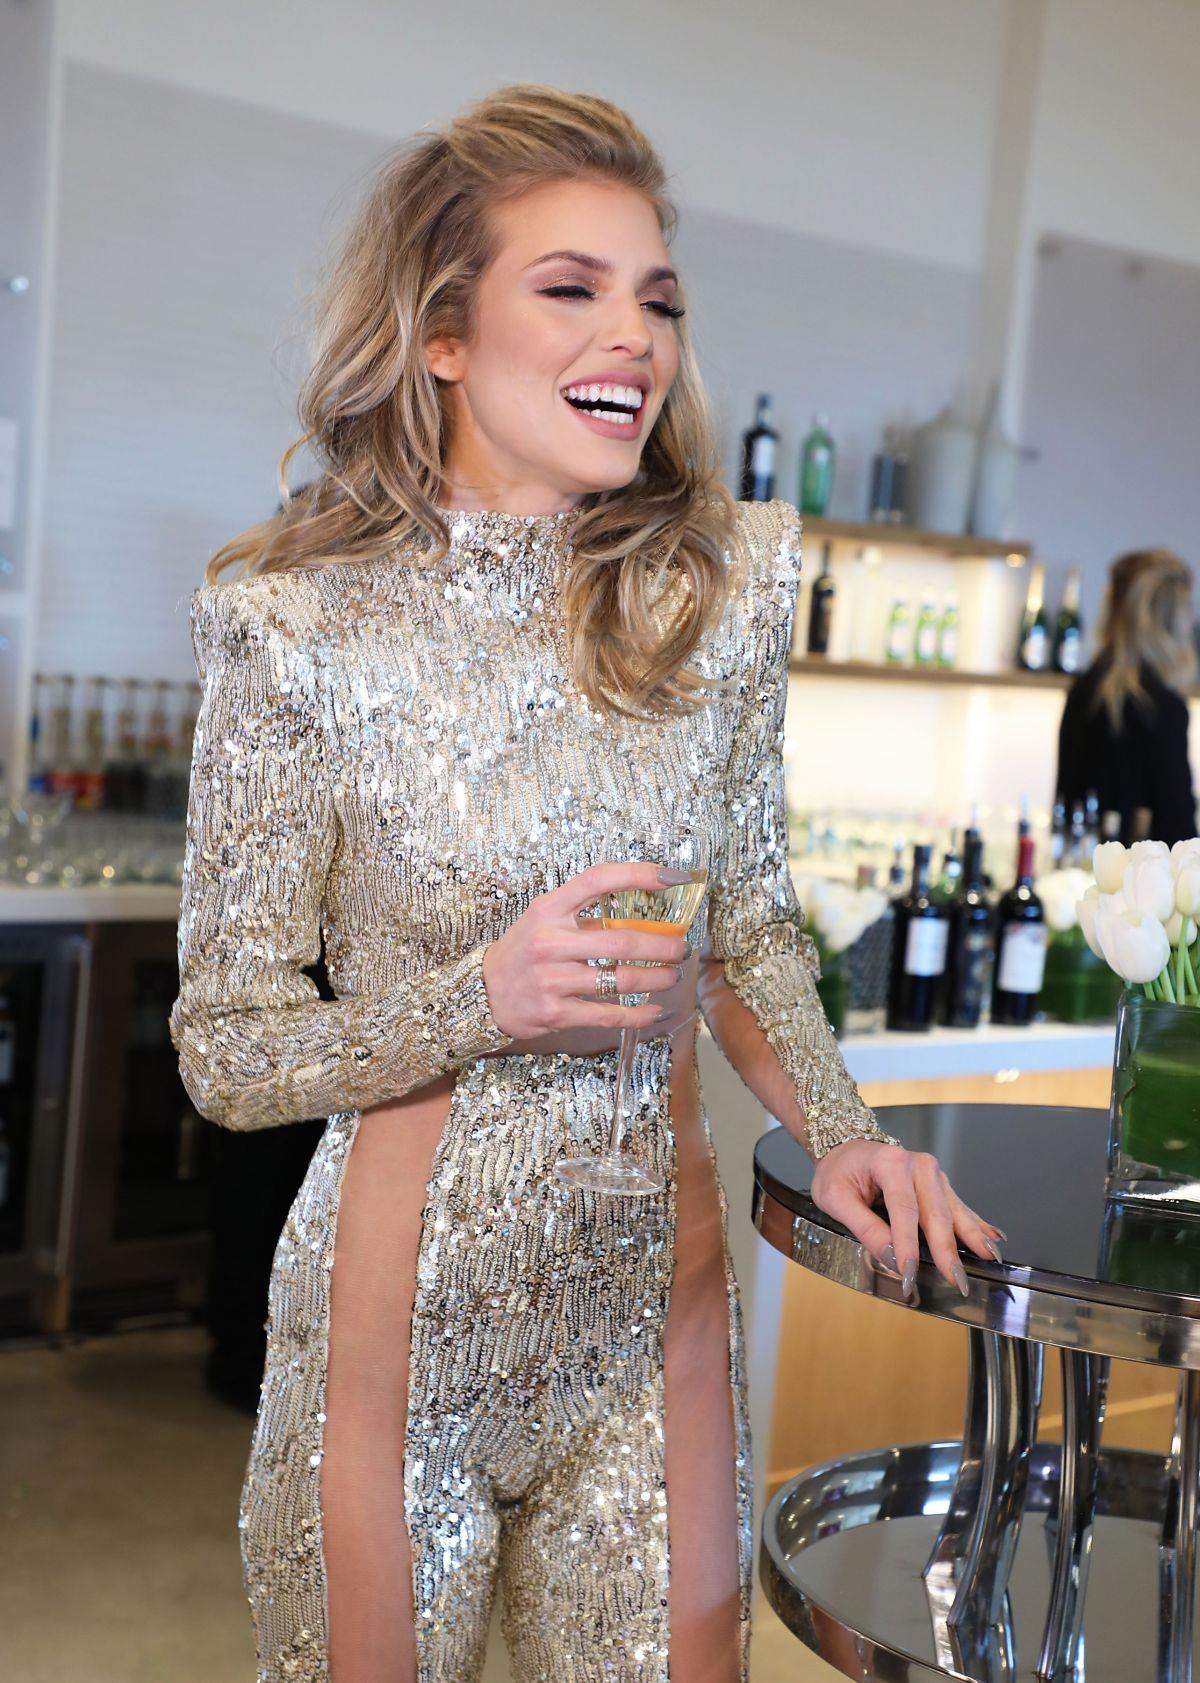 Forum on this topic: Michelle Molineux, annalynne-mccord/